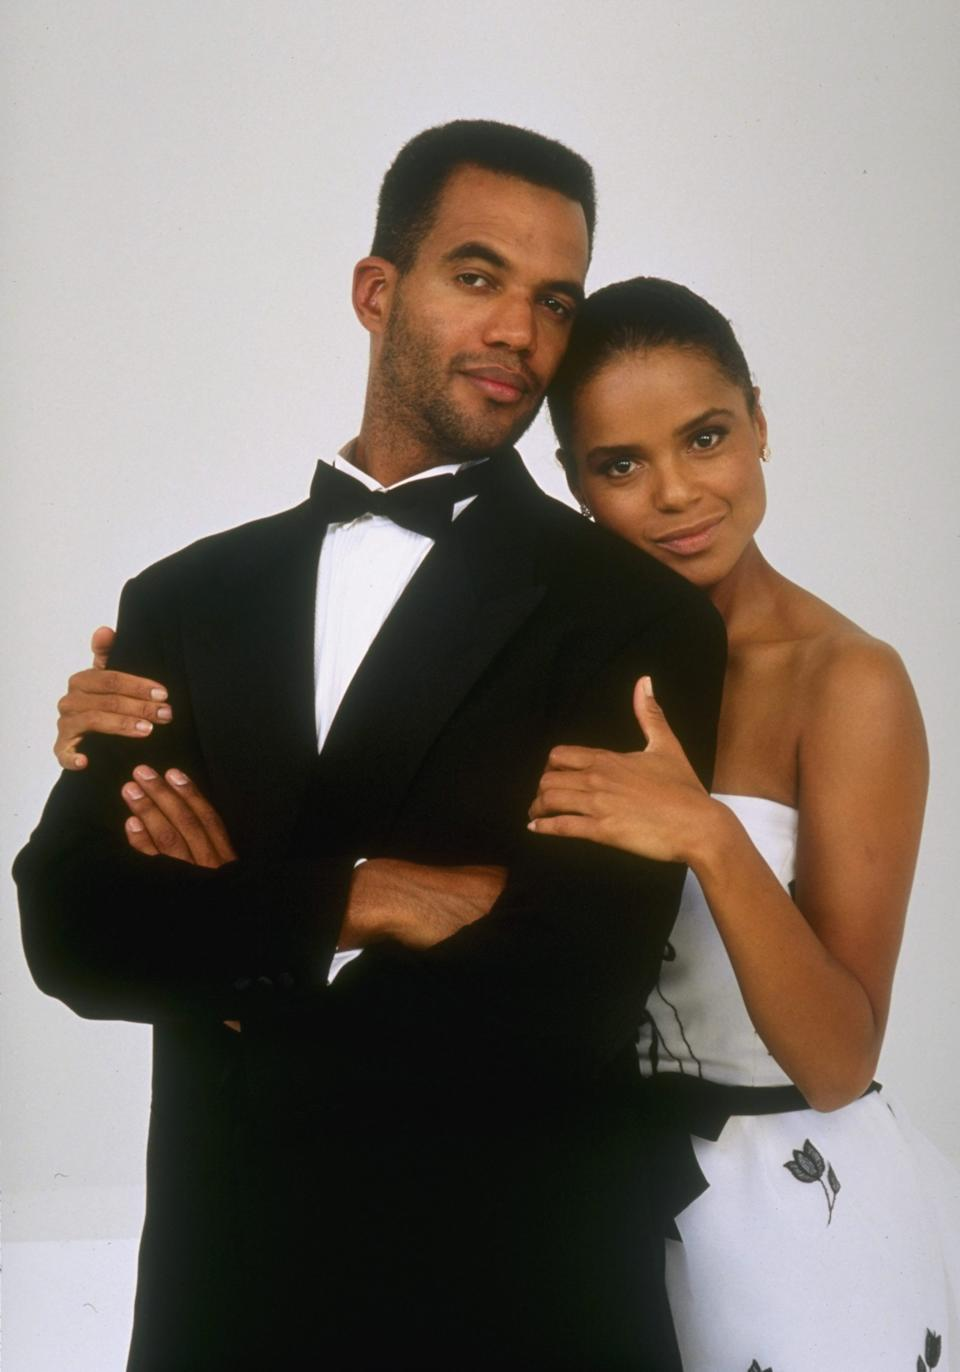 Rowell and her late <em>Young and the Restless</em> co-star Kristoff St. John in 1997. (Photo: Monty Brinton/CBS via Getty Images)